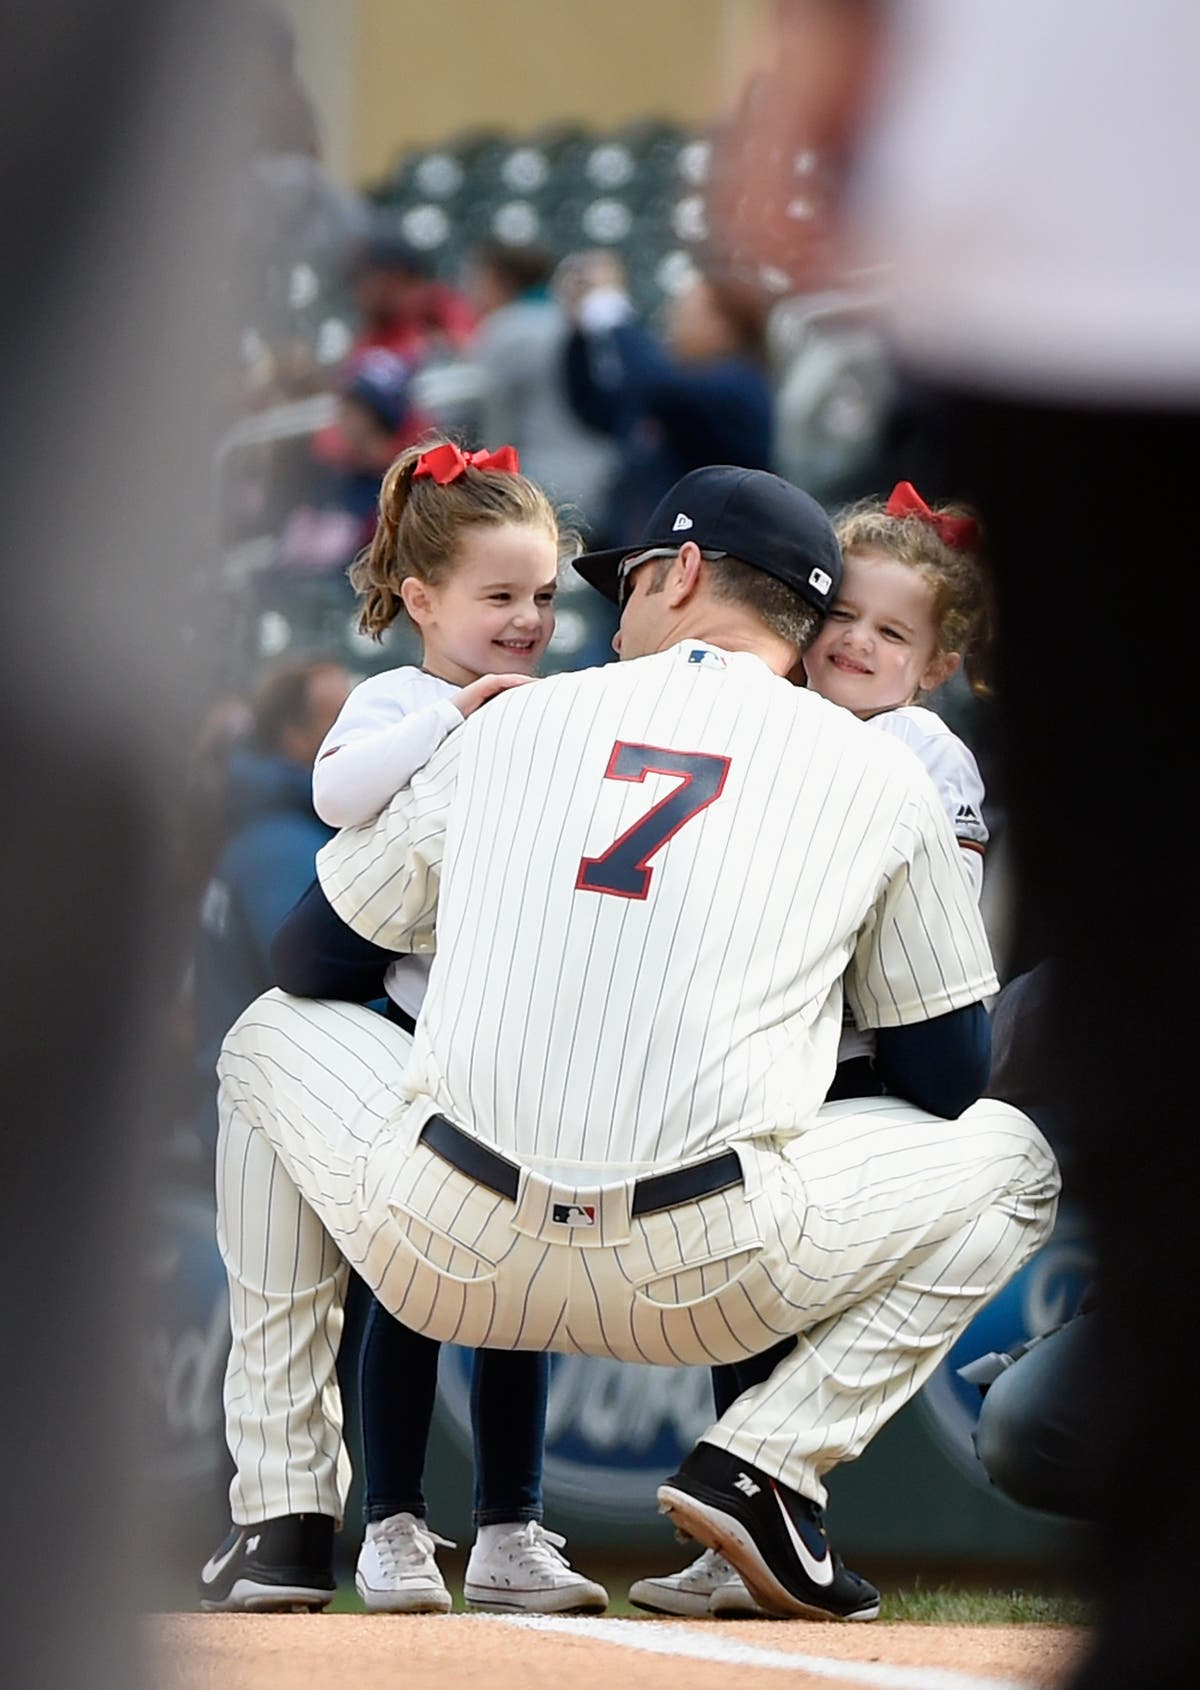 Joe mauer family photo